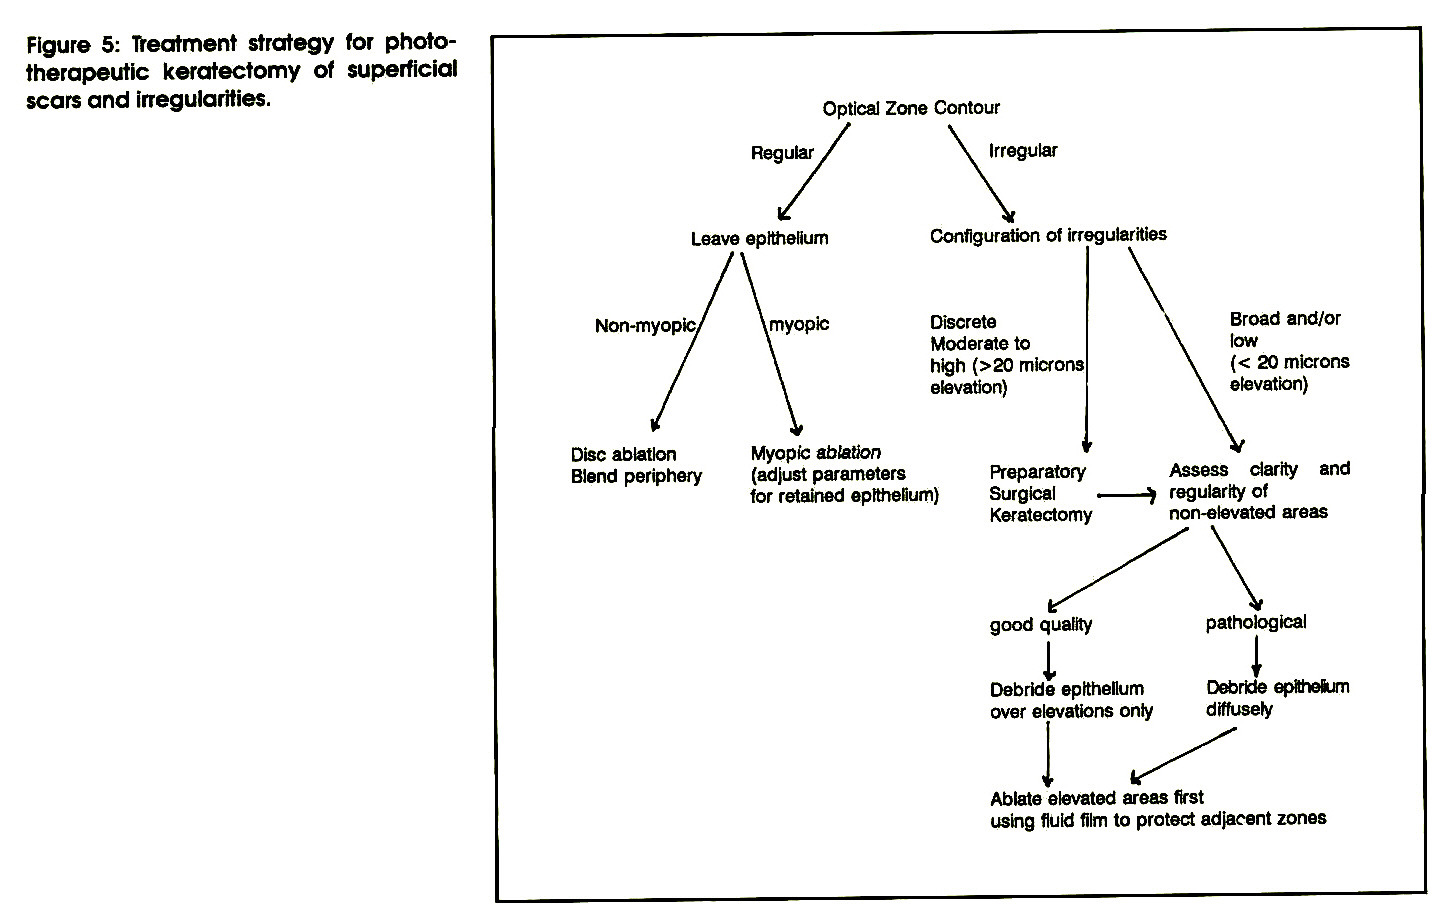 Figure 5: Treatment strategy for phototherapeutic keratectomy ot superficial scars and iRegularities.